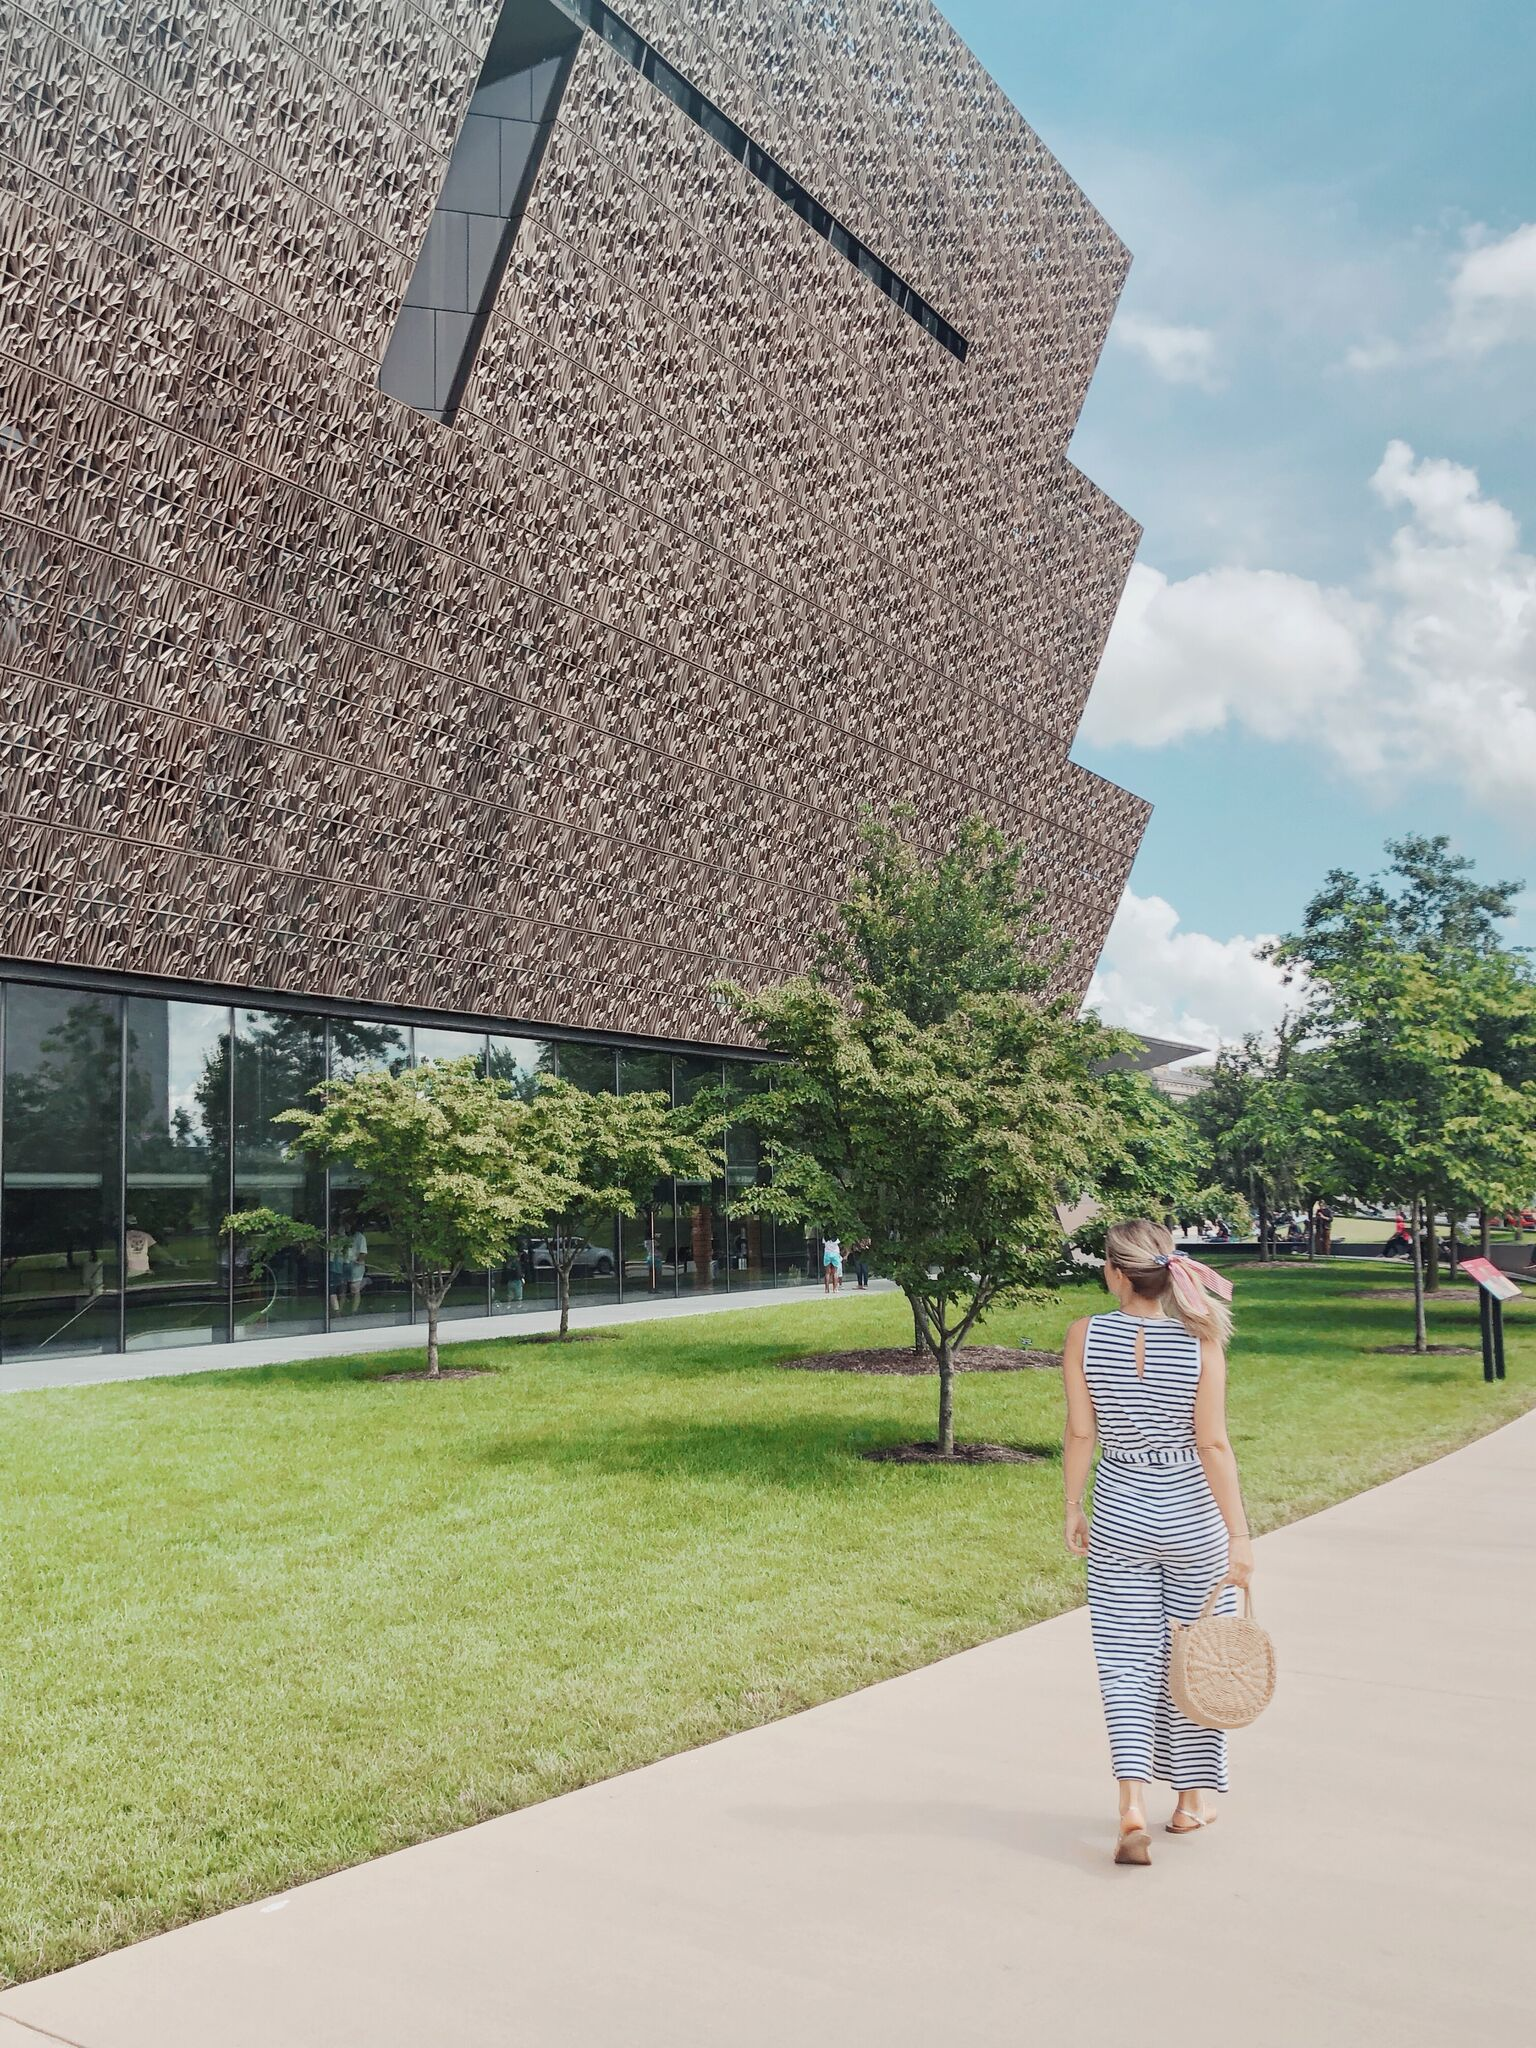 African American History Museum In Washington D.C.